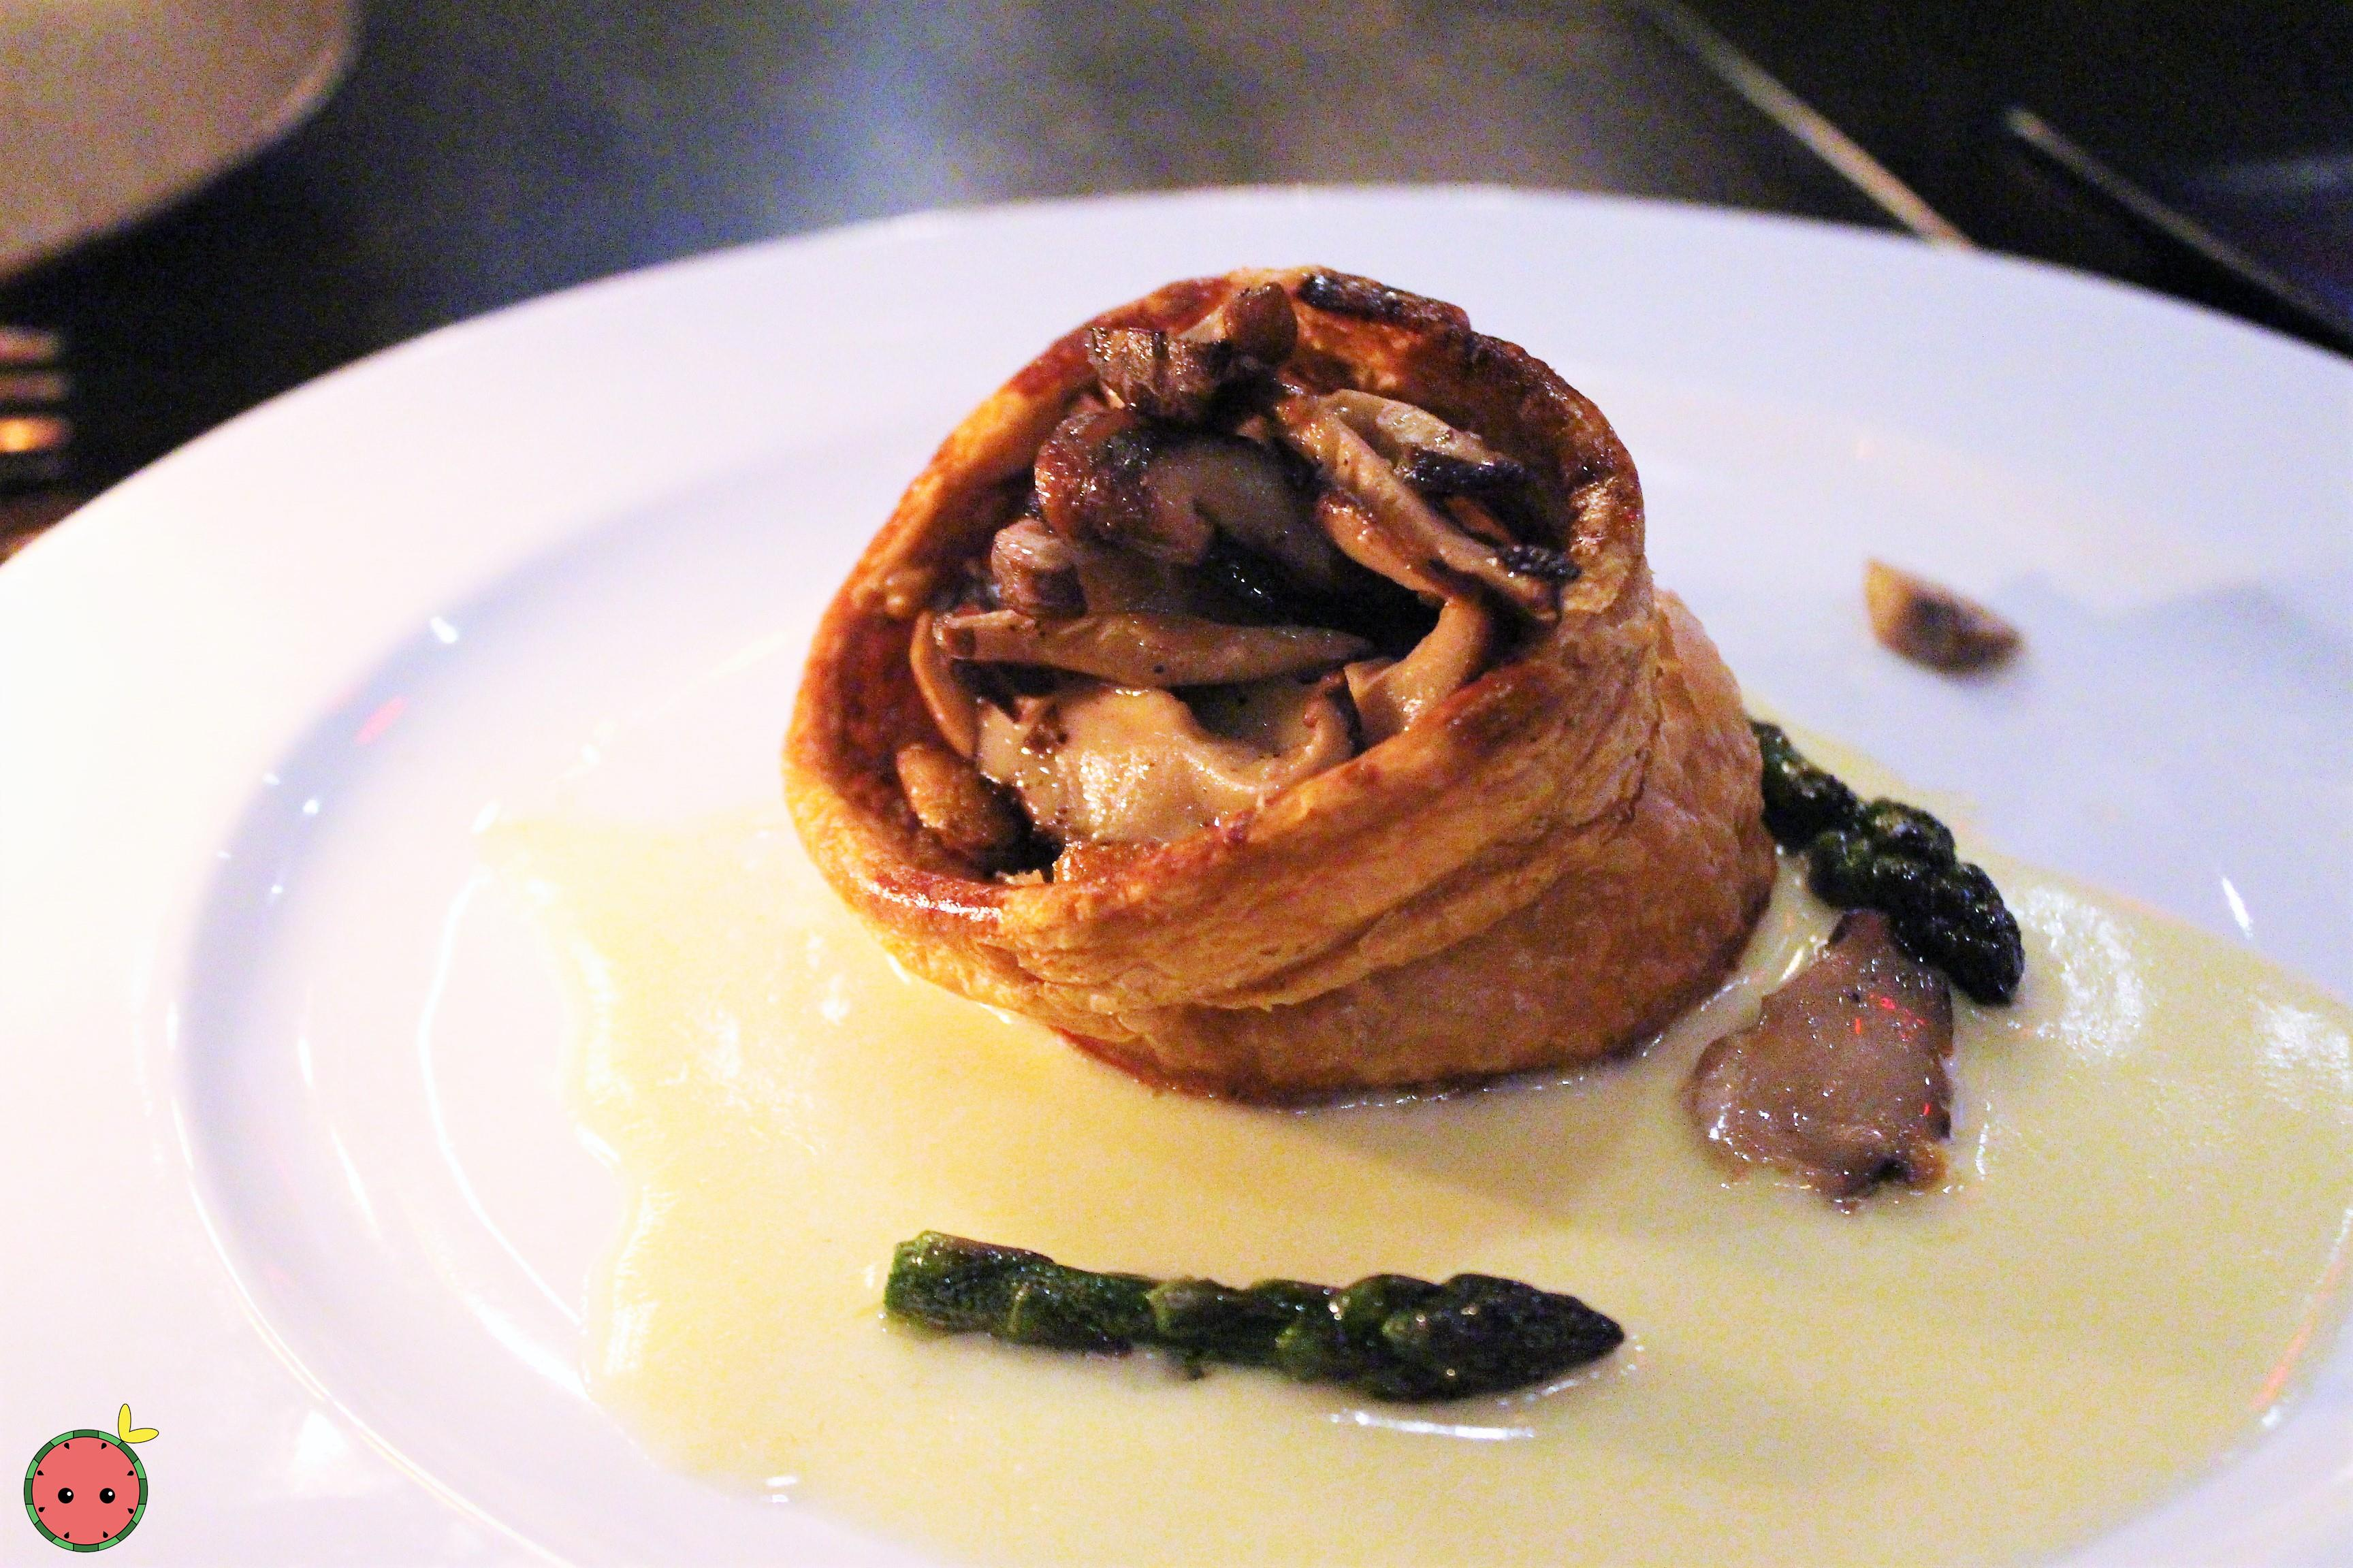 Mushroom Vol Au Vent with Jang Sauce - Mushroom mix filing, puff pastry, soy beurre blanc